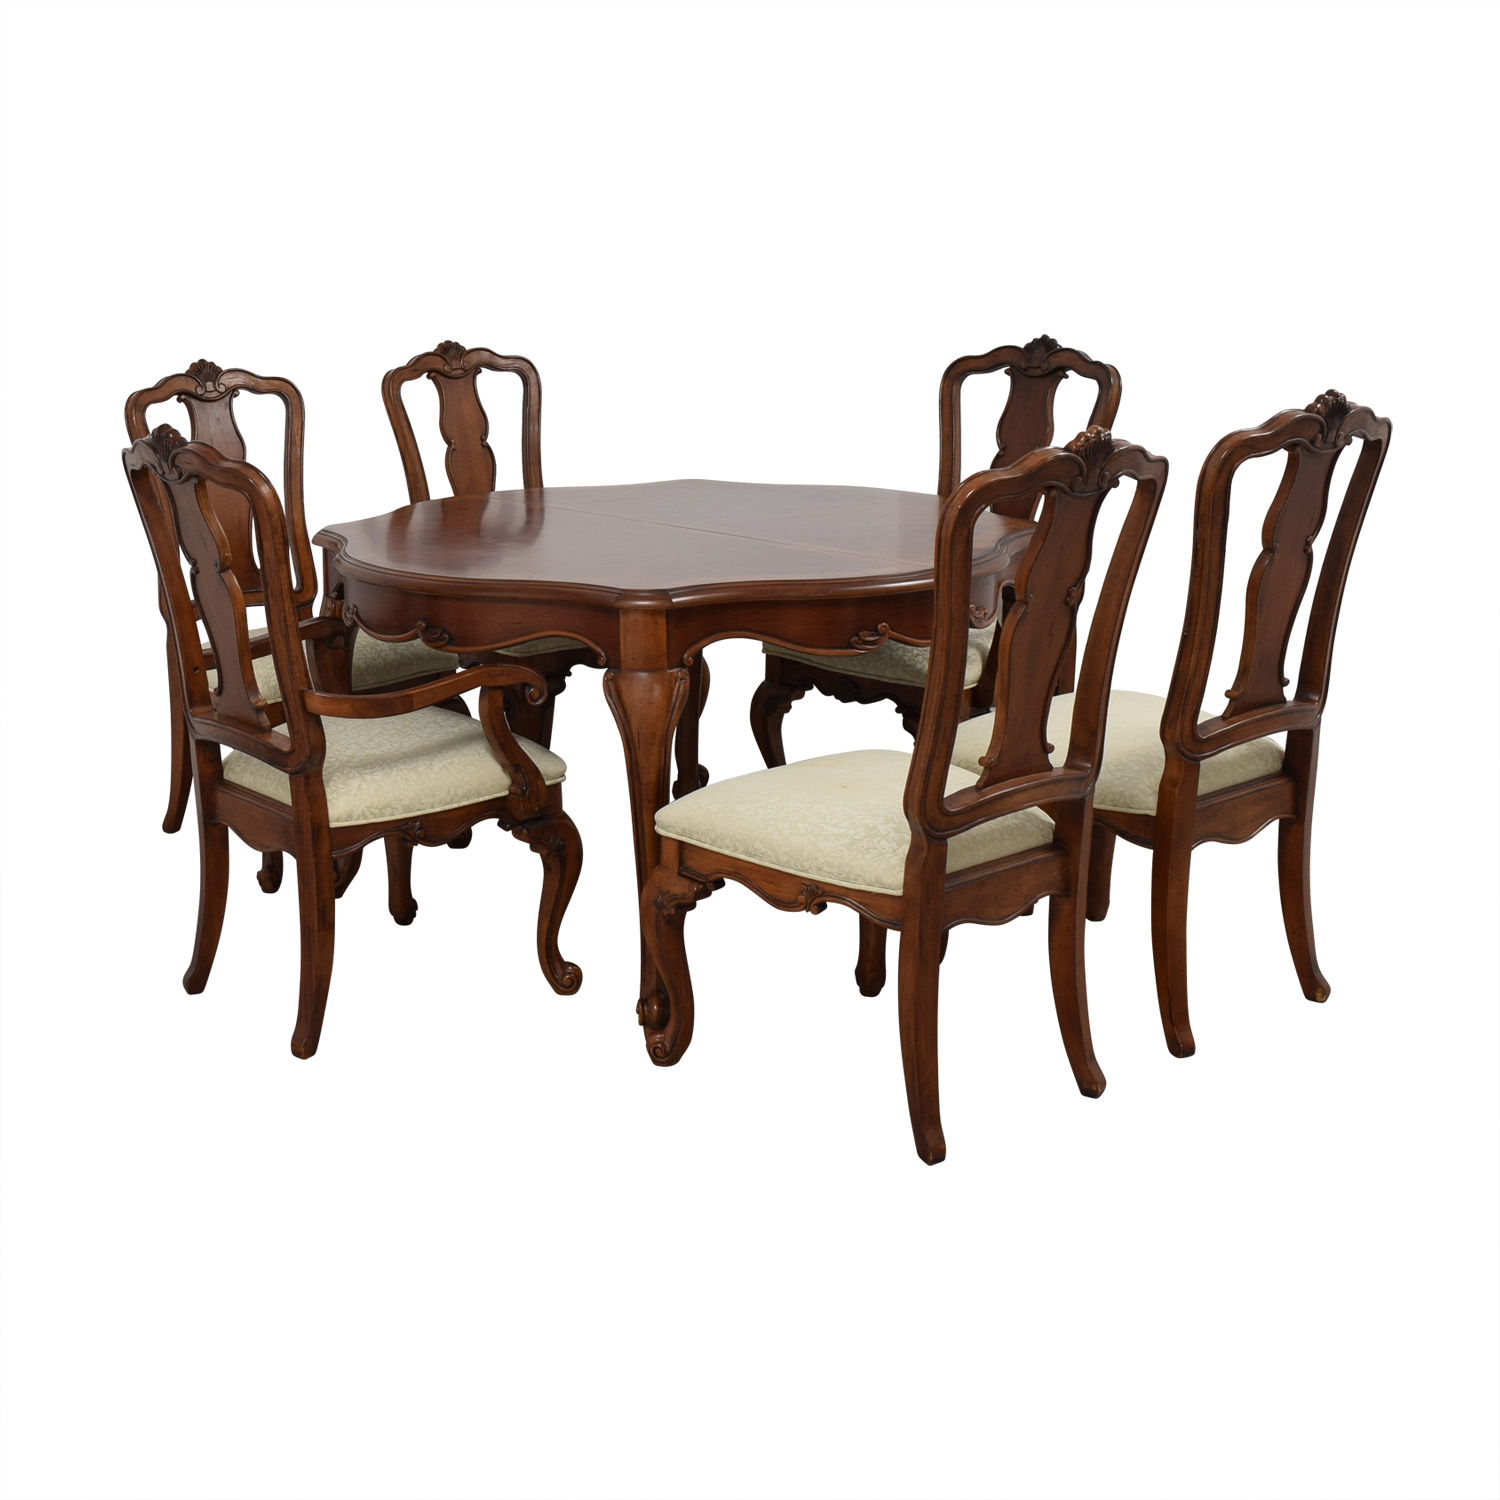 Macy's Macy's Dovetailed Wood Extendable Dining Set second hand